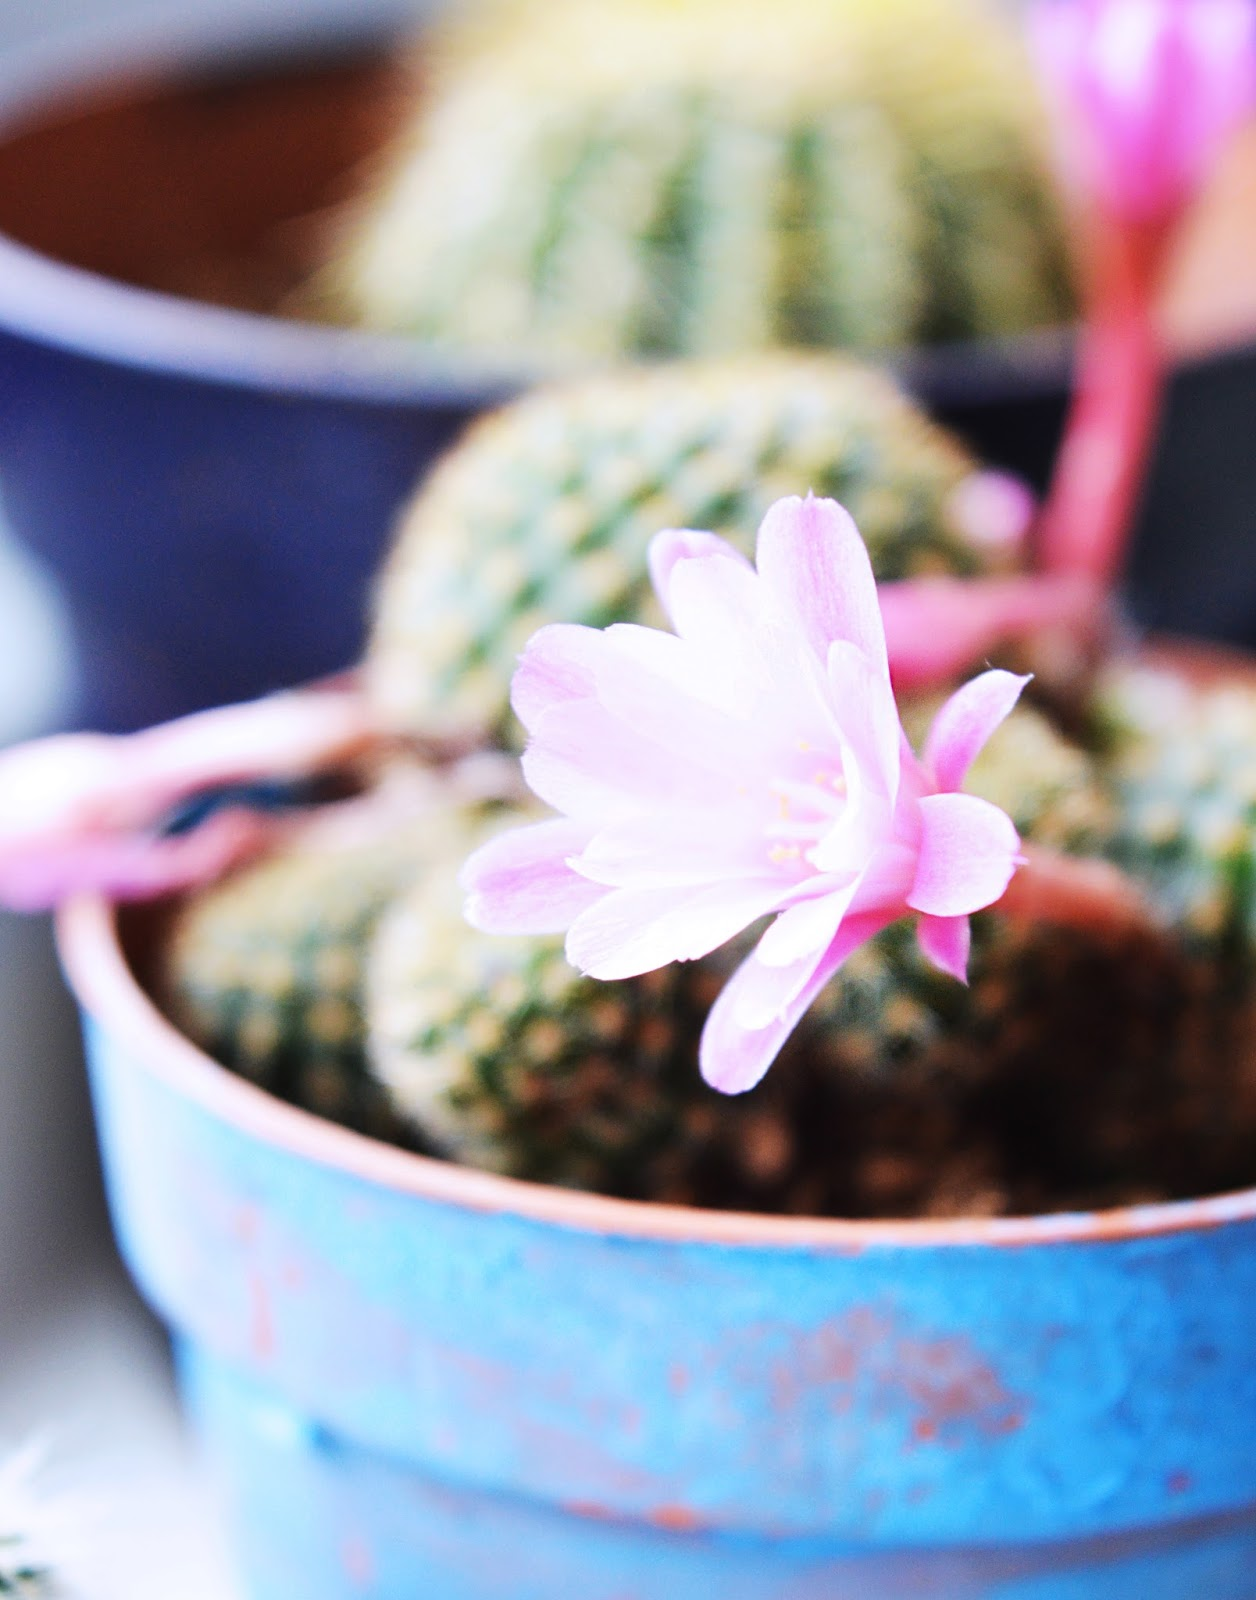 ball shaped cactus with pink flowers